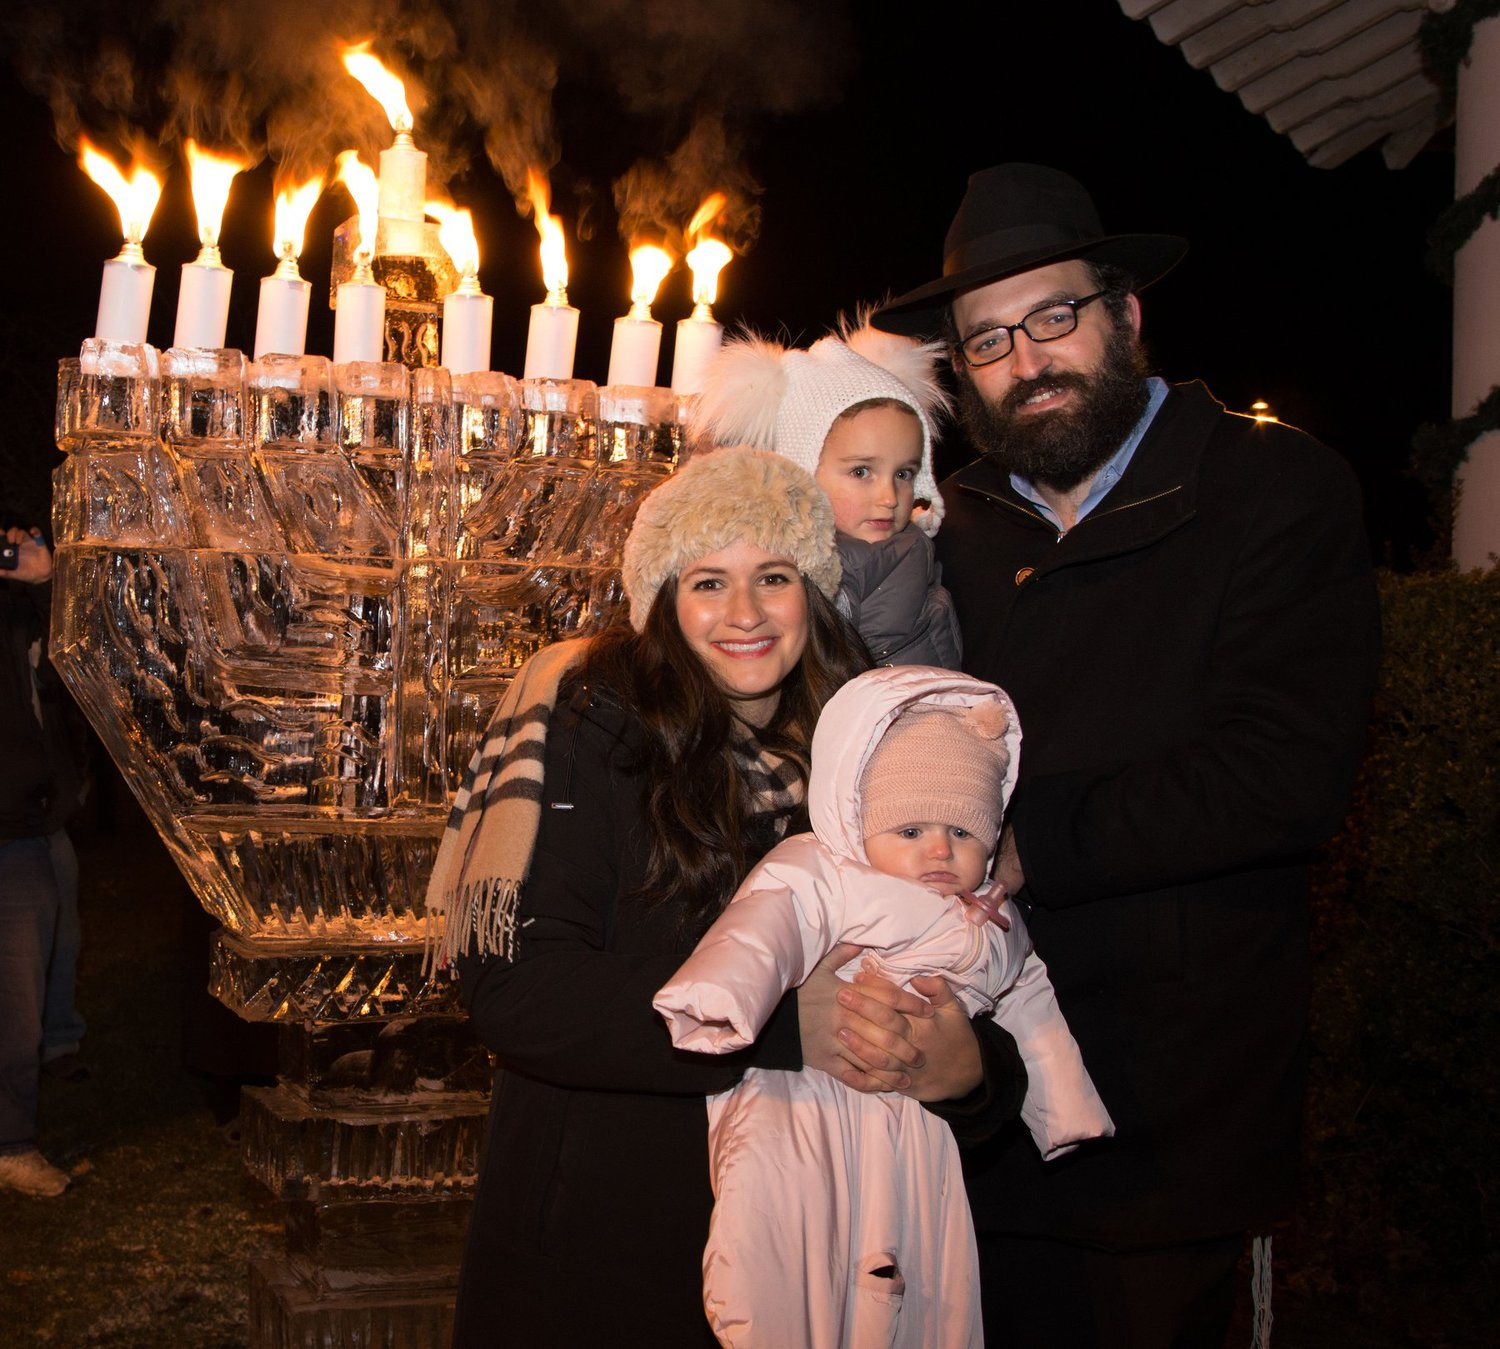 Rabbi Shimon Stillerman and wife, Zeldy, in 2018 at Chabad of Islip's annual Hanukkah event on Main Street in Brightwaters Village.